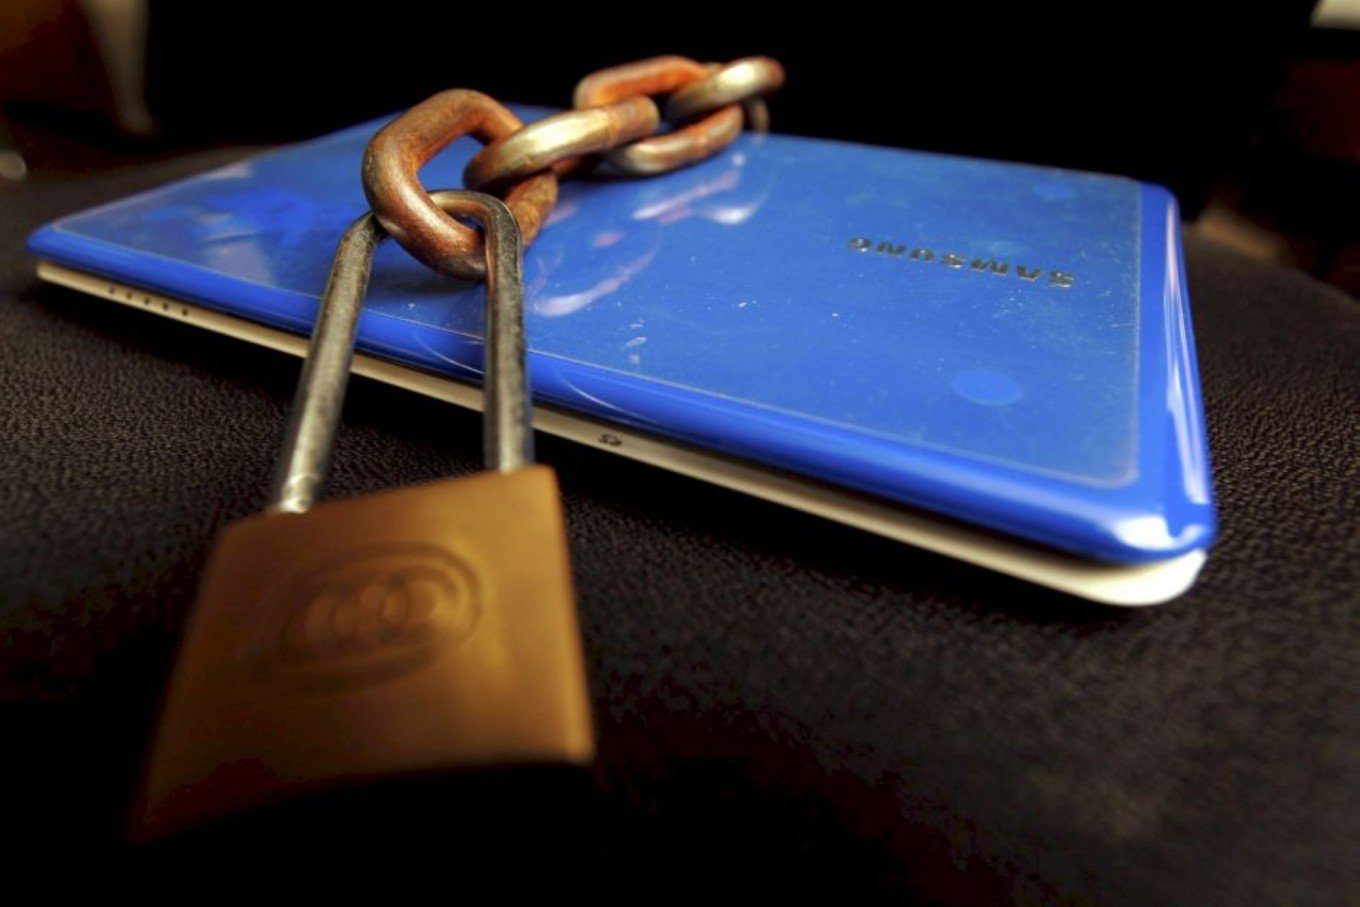 Malaysia the fifth-worst country for personal data protection: Study